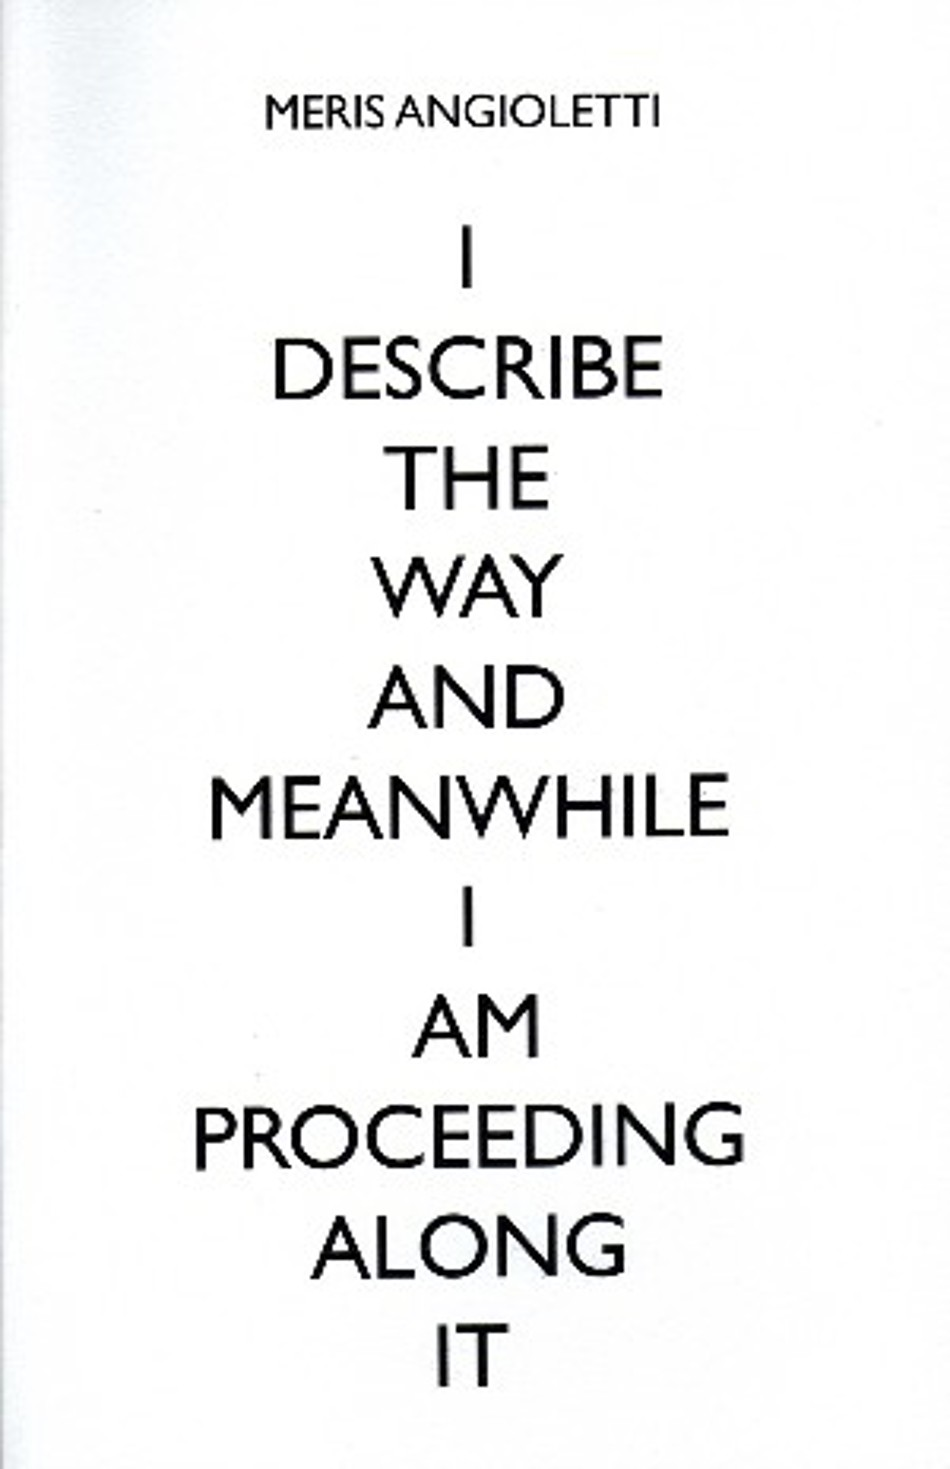 I describe the way and meanwhile I am proceeding along it